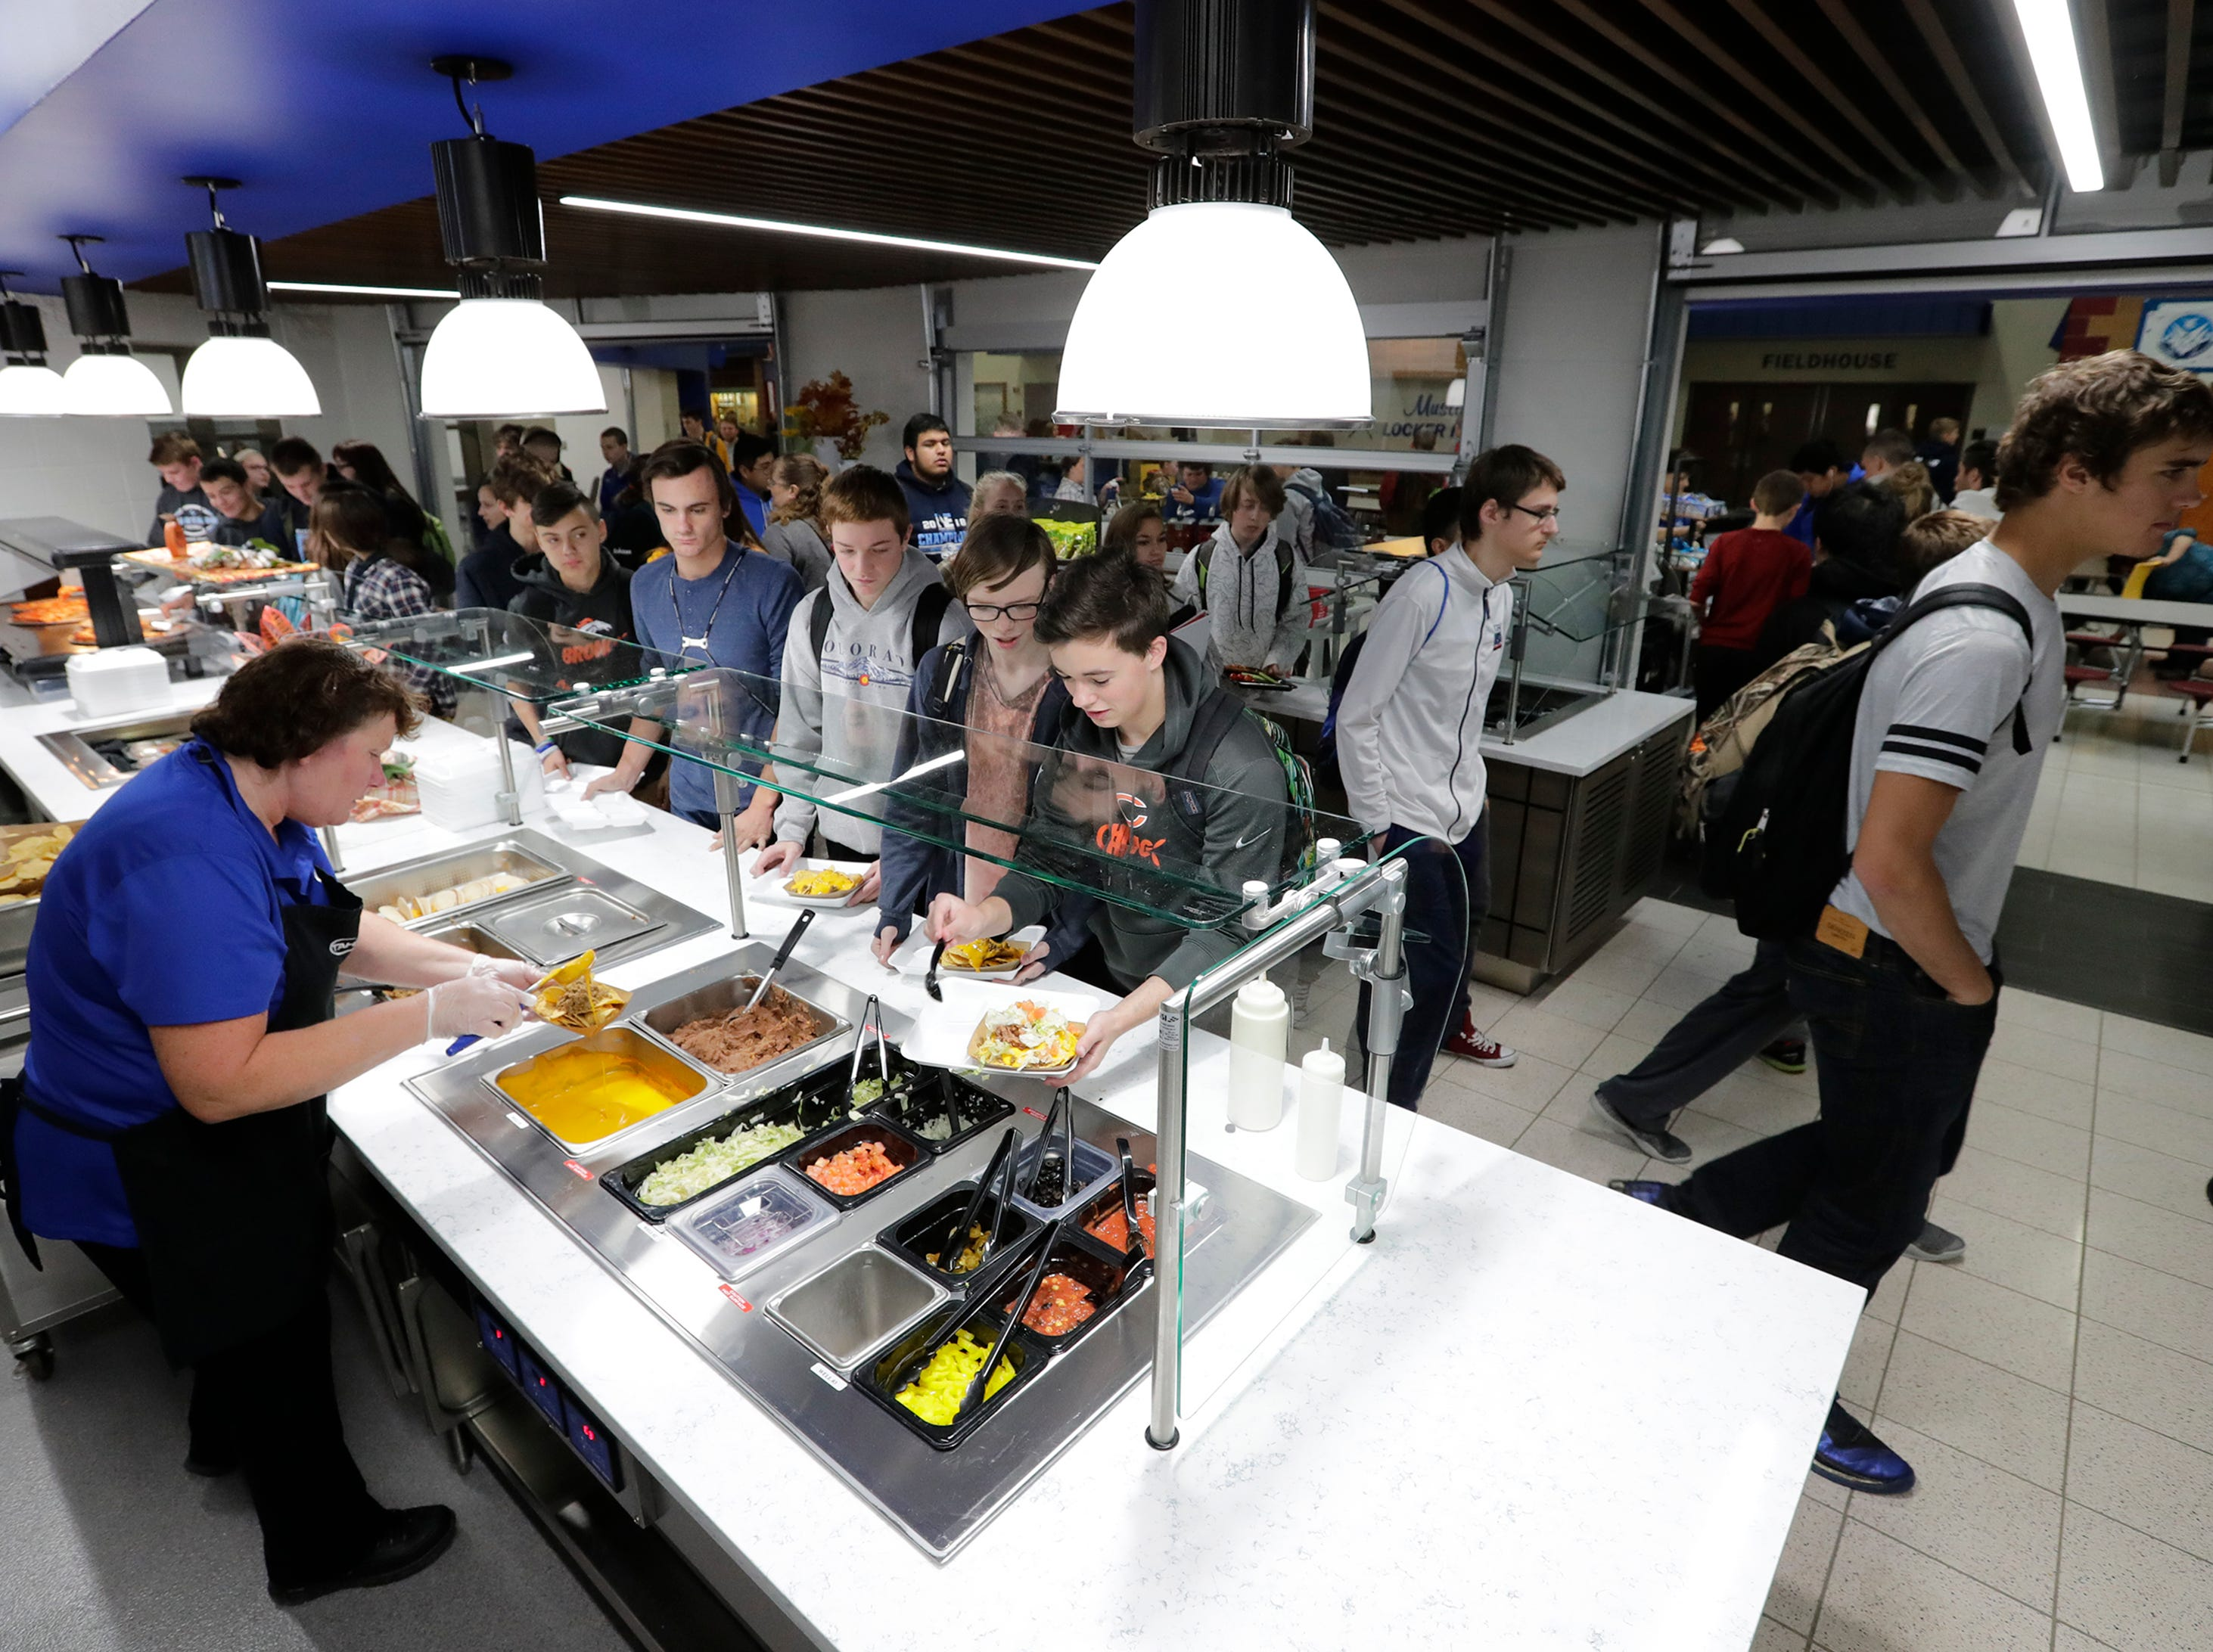 Sherrie Hoelzel, left, serves lunch to students in part of the new dining area at Little Chute High School Tuesday, November 6, 2018, in Little Chute, Wis. 